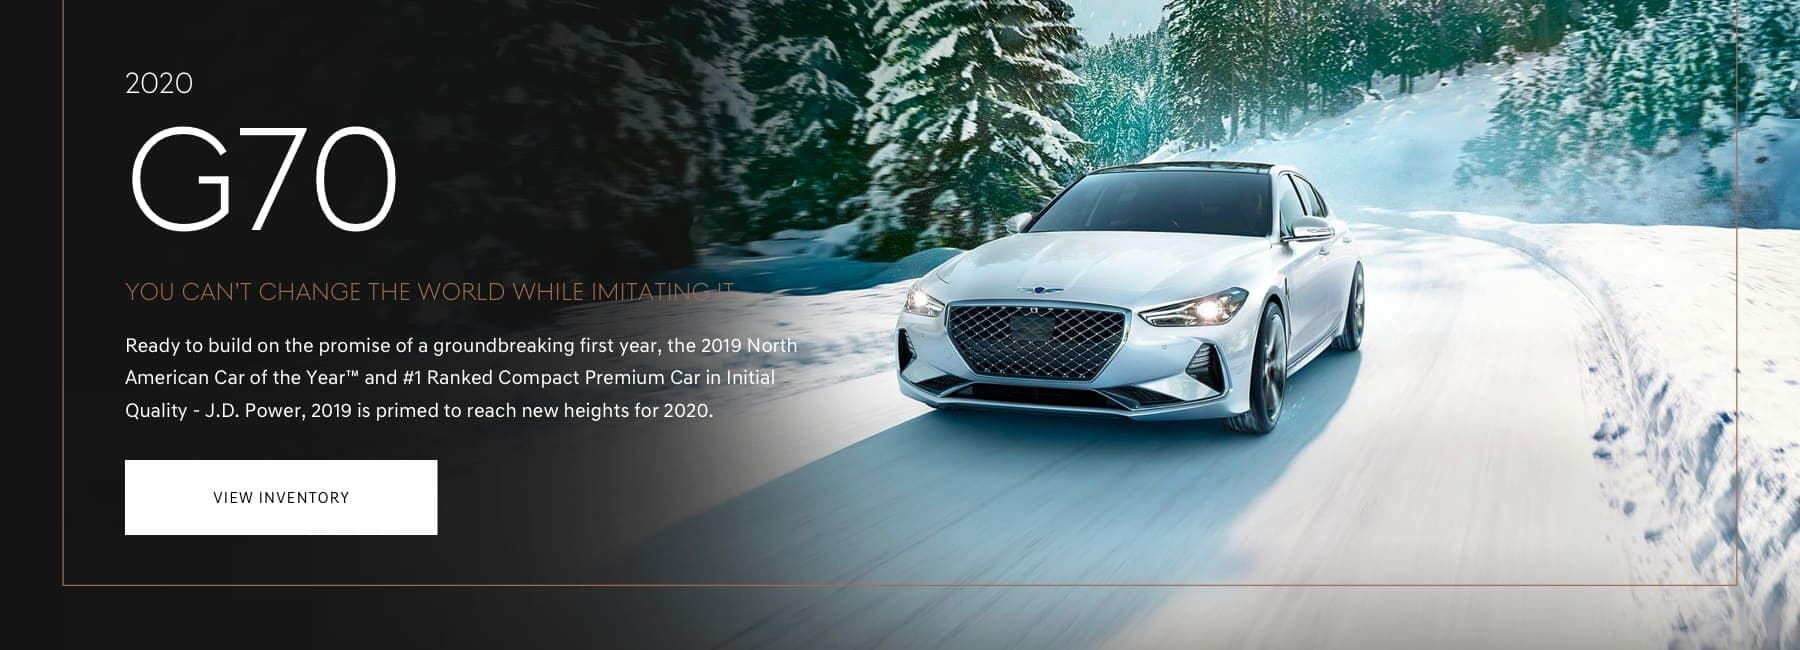 2020 G70 - View Inventory